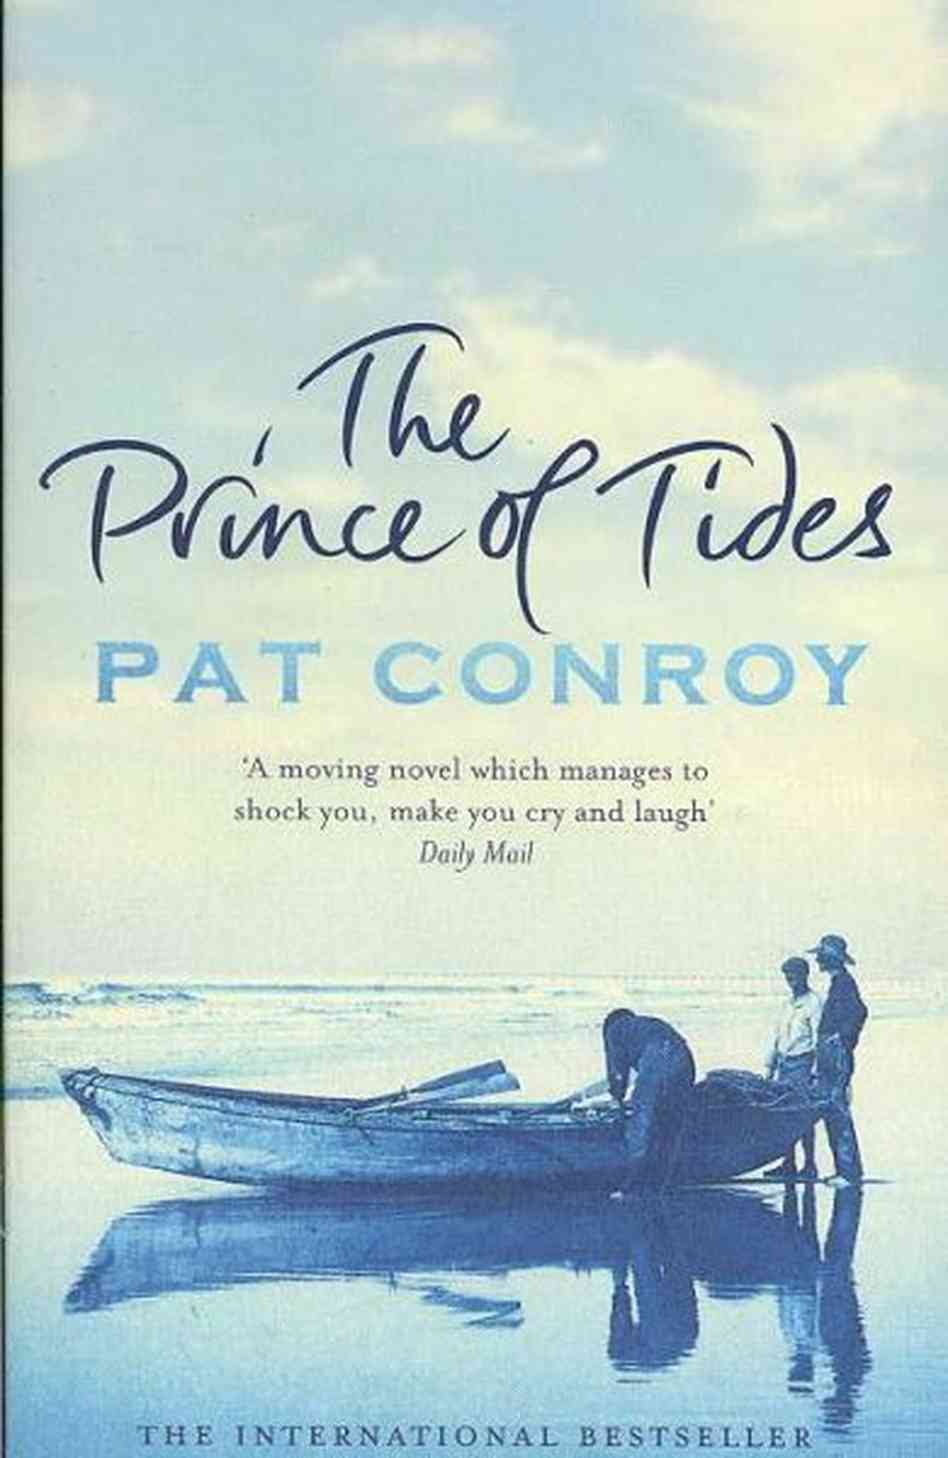 The Prince Of Tides – Book & Movie Review | Michael Cavacini